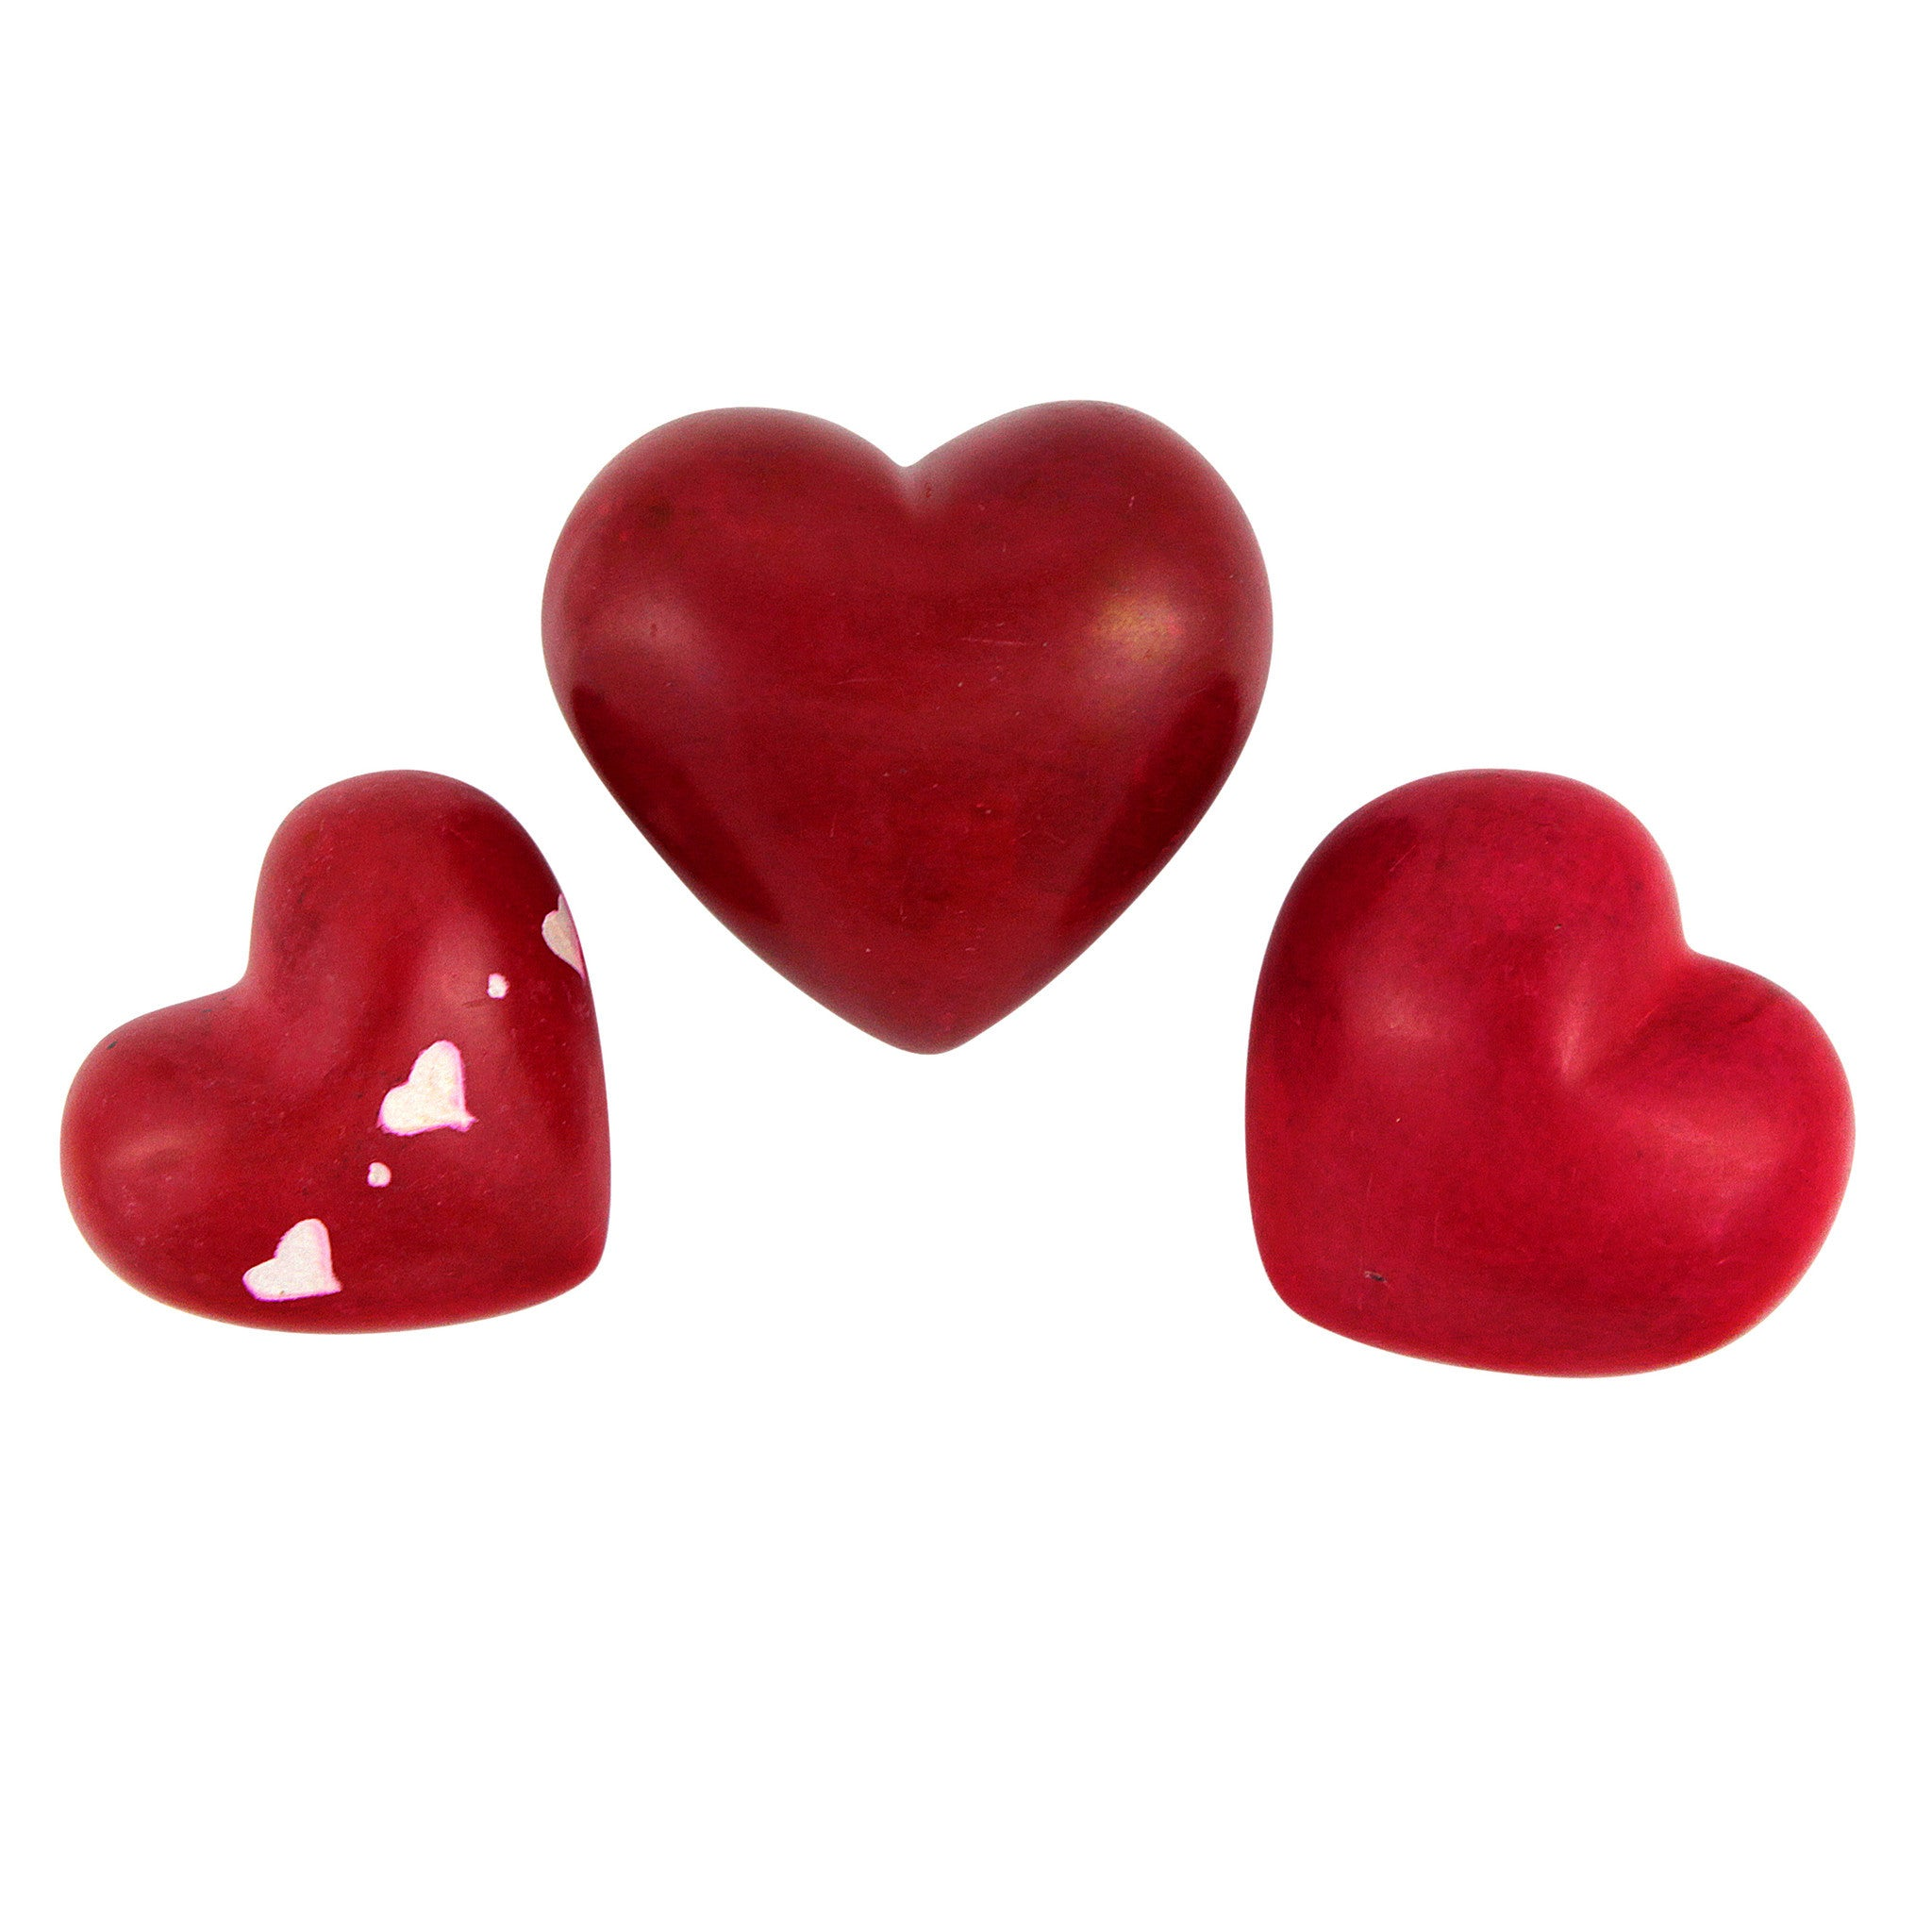 Kenyan Red Soapstone Heart Shaped Paperweight Set by Venture Imports